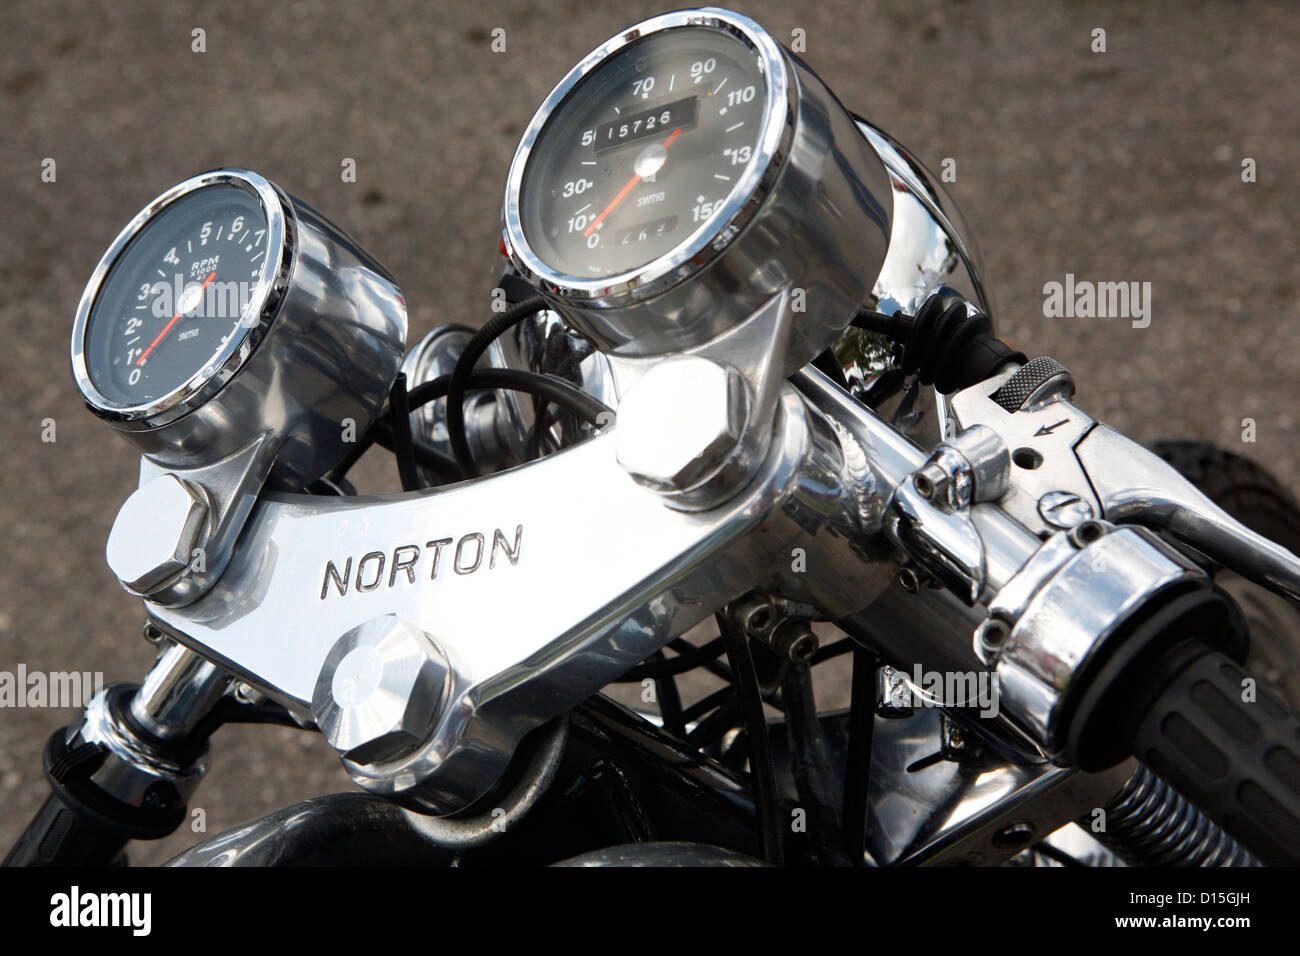 The handlebars and dials of a classic British motorbike. - Stock Image